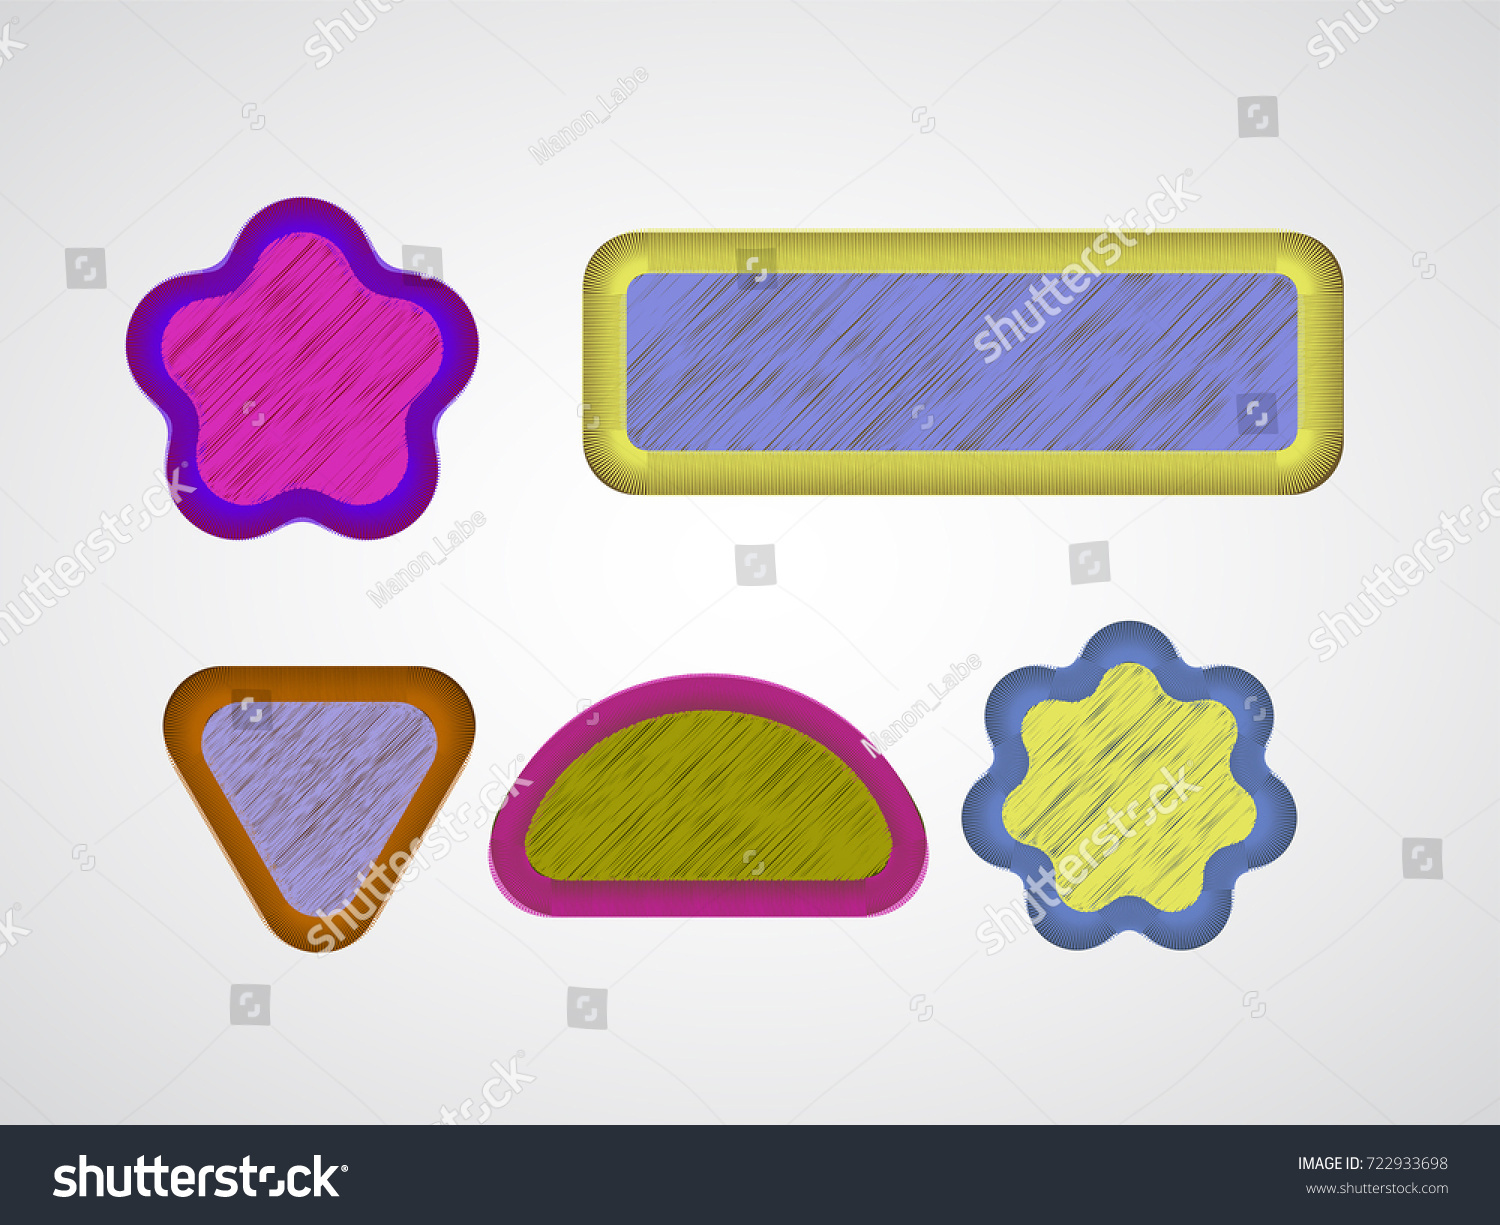 Embroidered Chevron Patches Realistic Vector Needlework Stock Vector ...